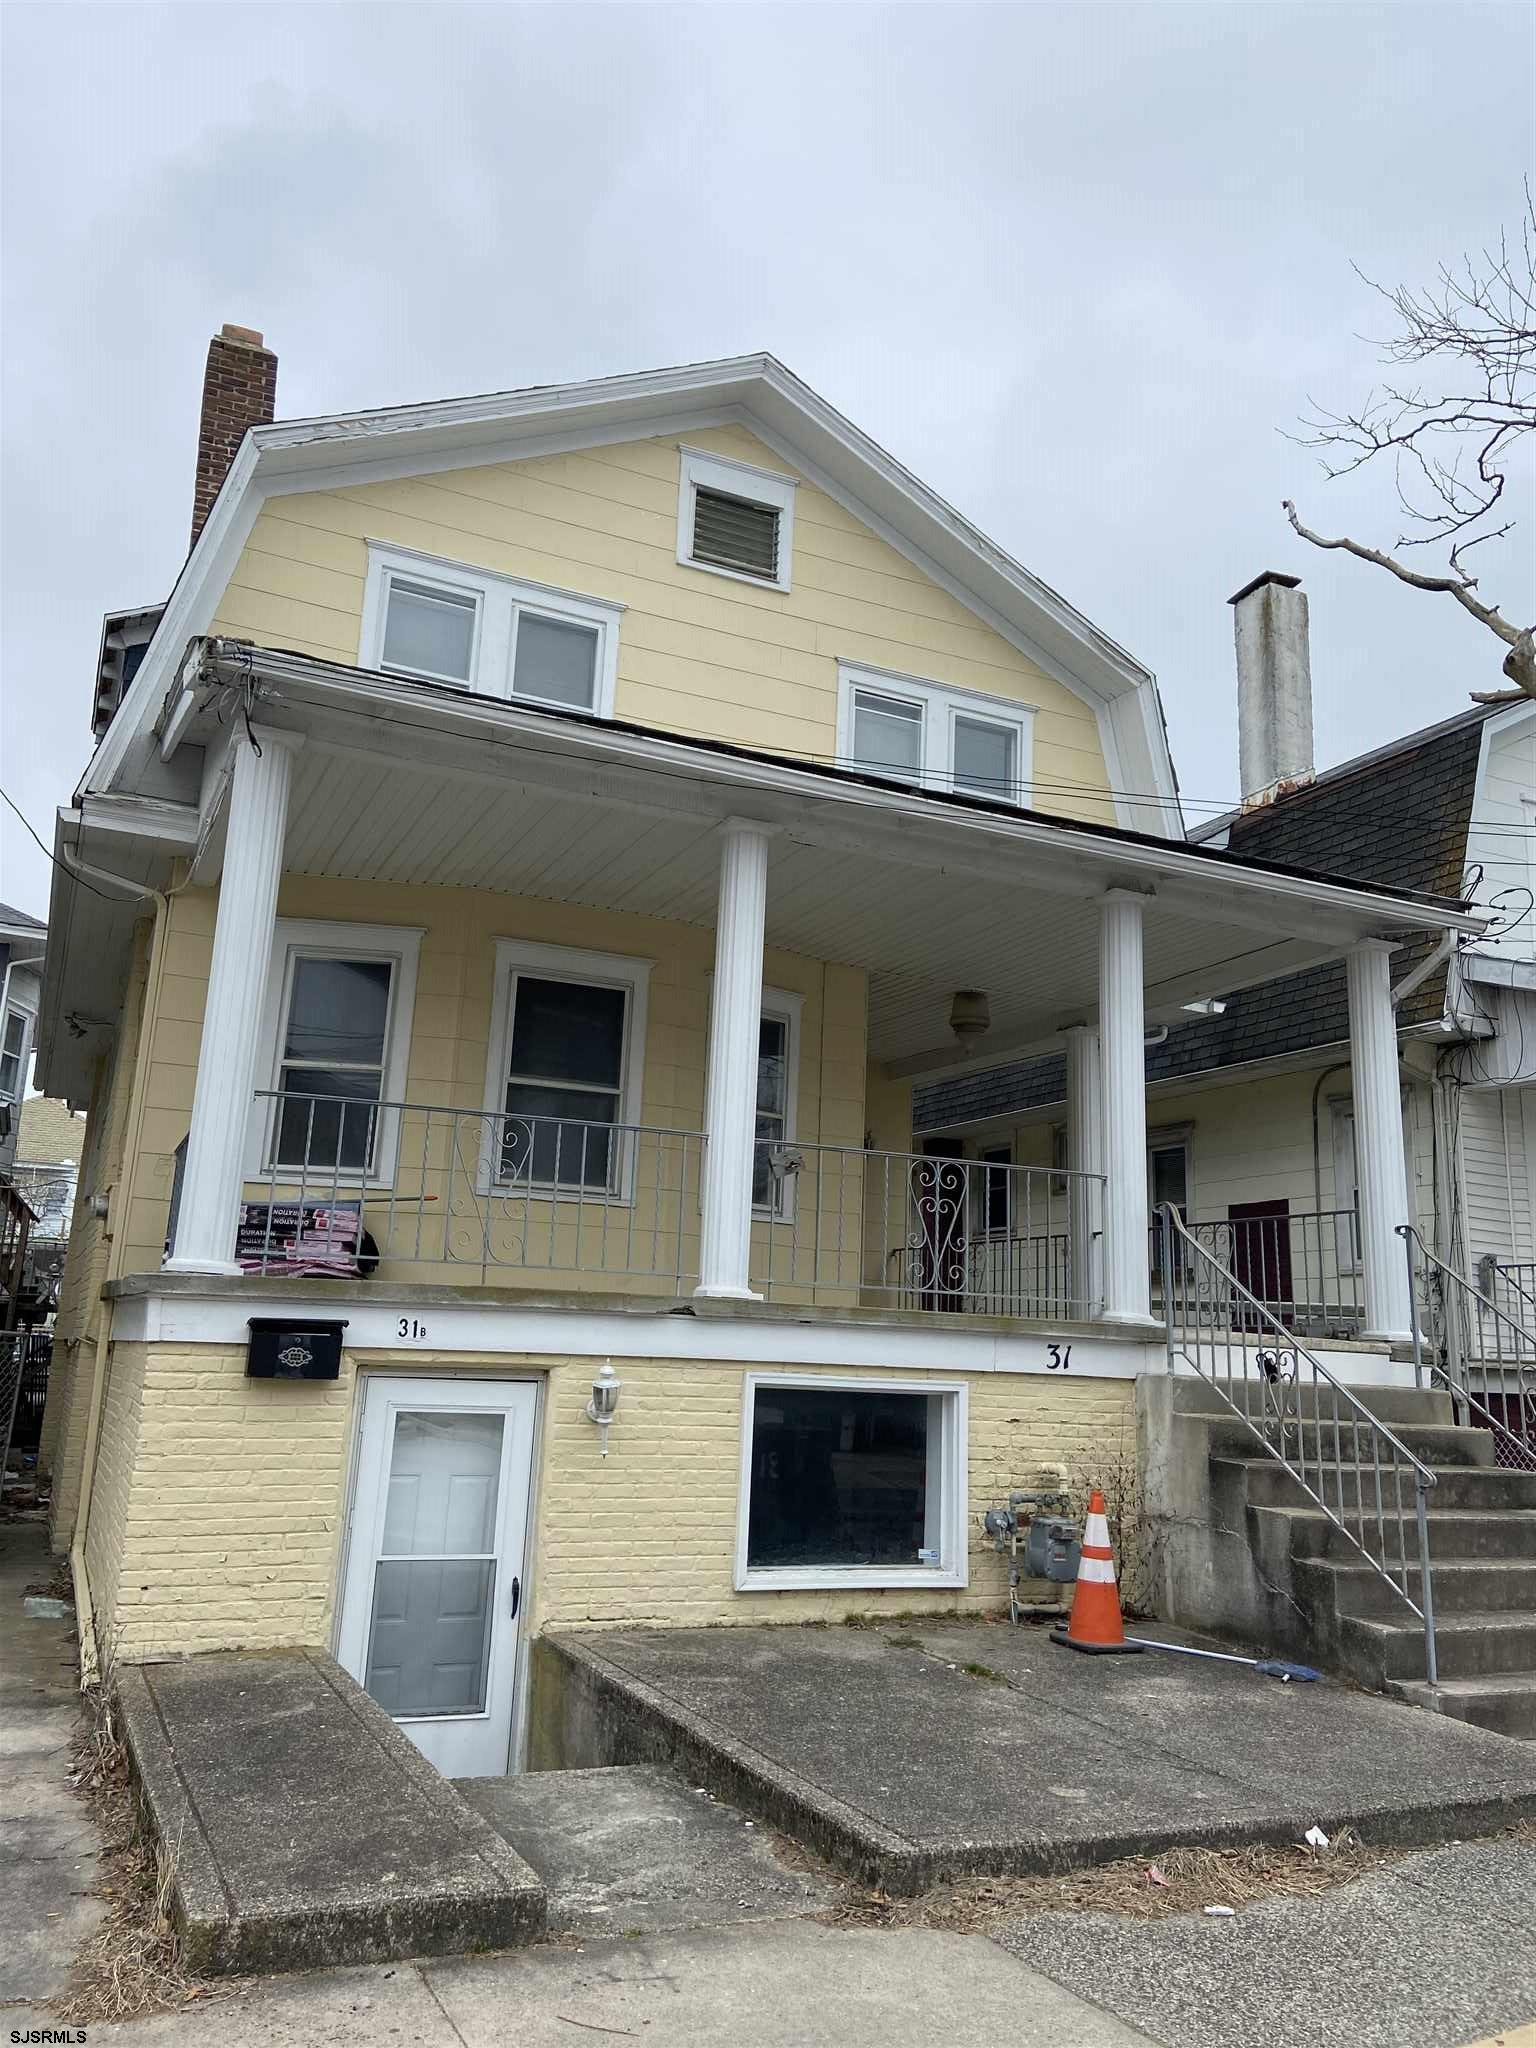 Upstairs unit 2nd floor is 3BD 2.5BA $1850.00 has a washer and dryer. includes gas heat and hot water. Tenant pays for electric, phone and cable. Available 4/1/2021. Pets upon discretion. Non smokers only. No off street parking. Close to the  beach and boardwalk, public transportation. All applicants must go to our website www.balsleylosco.com, click on the 3 grey bars to the right then rentals. It is $50.00 pp anyone 18 or older moving in. Once the applicants have done this I will need you to give me their legal names and DOB to get the report back. No exceptions.